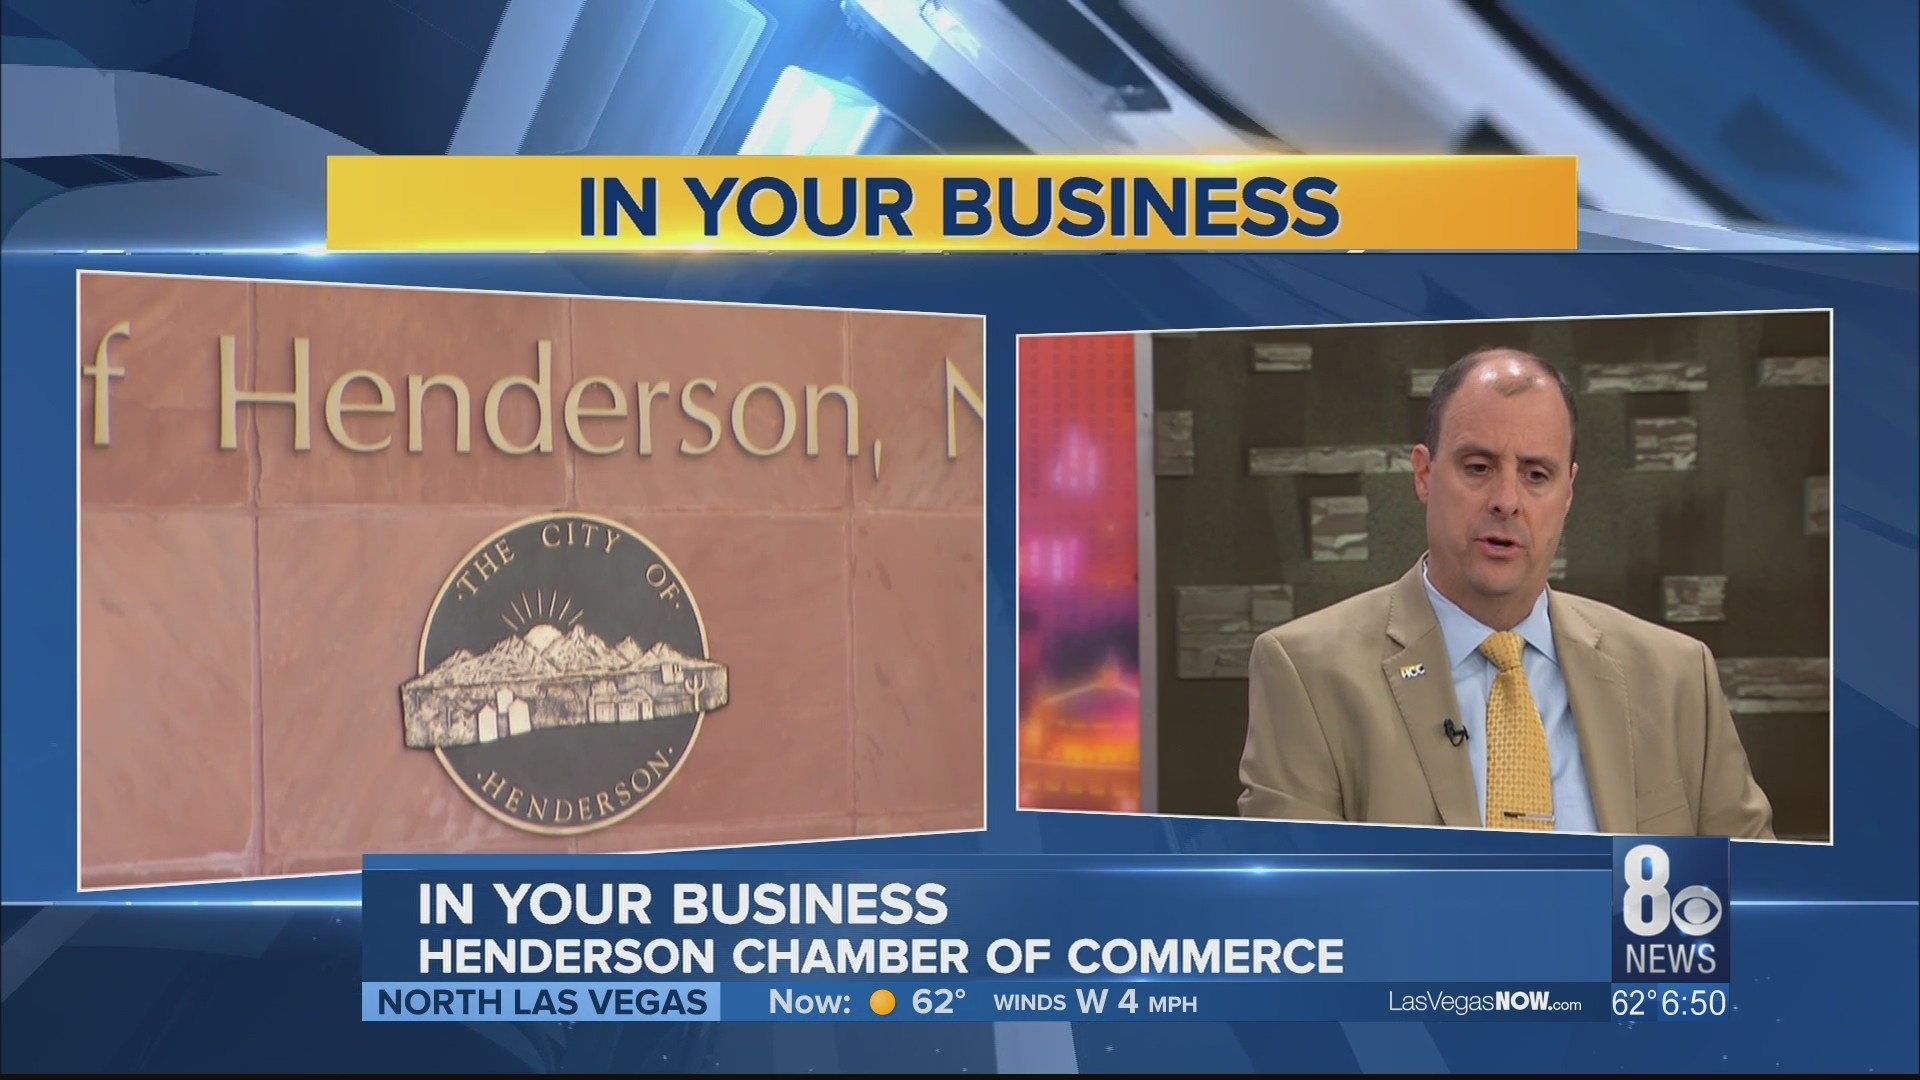 The Henderson Chamber of Commerce supports more than Henderson